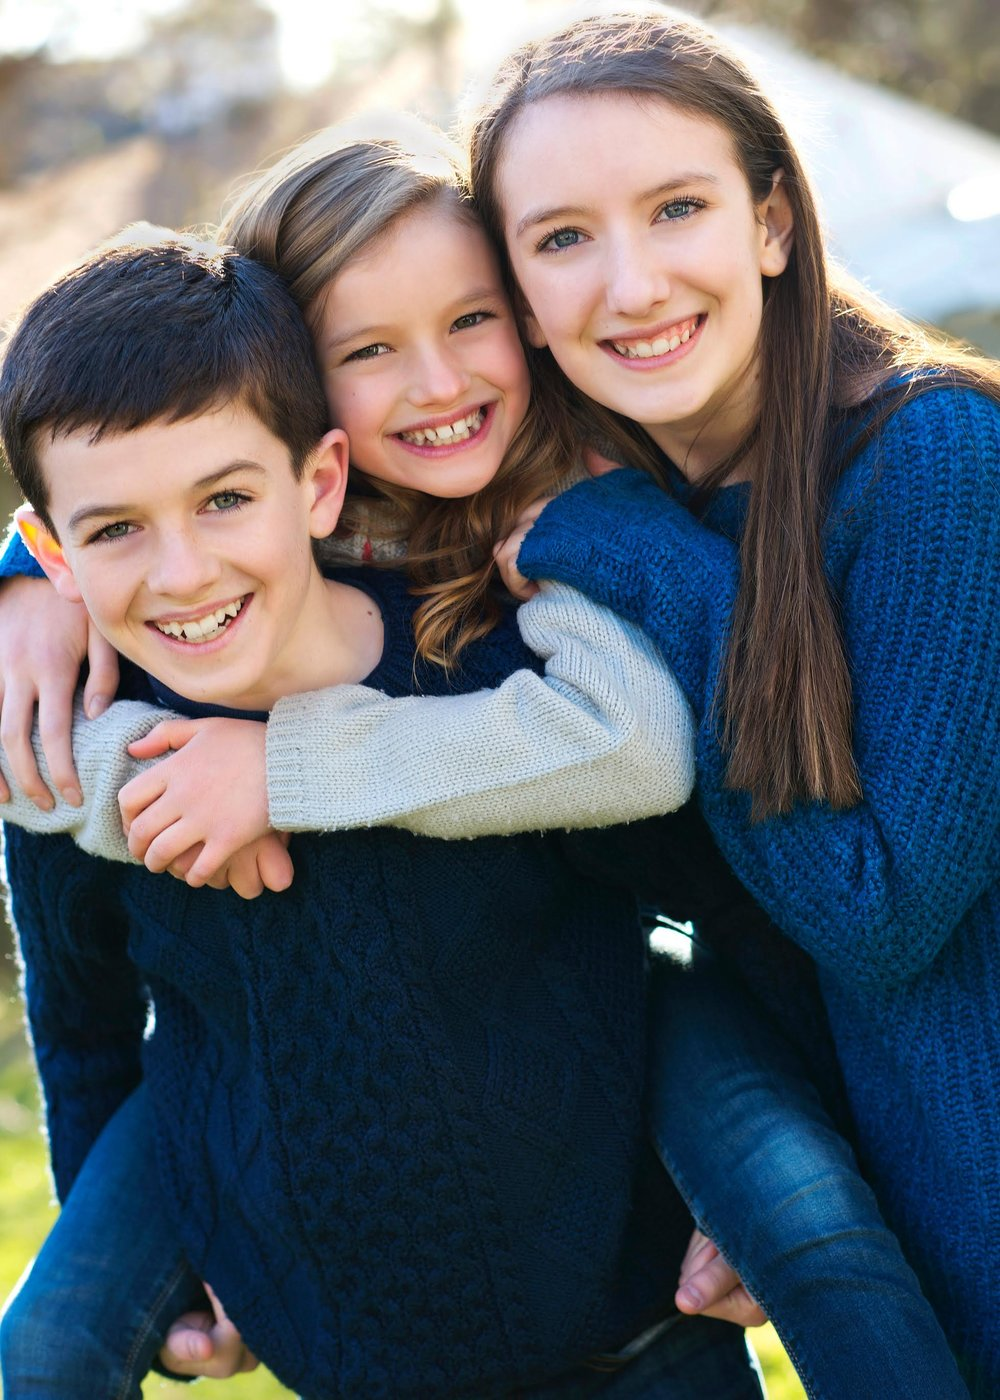 From left to right: Will, Ellie and Caroline Coffey